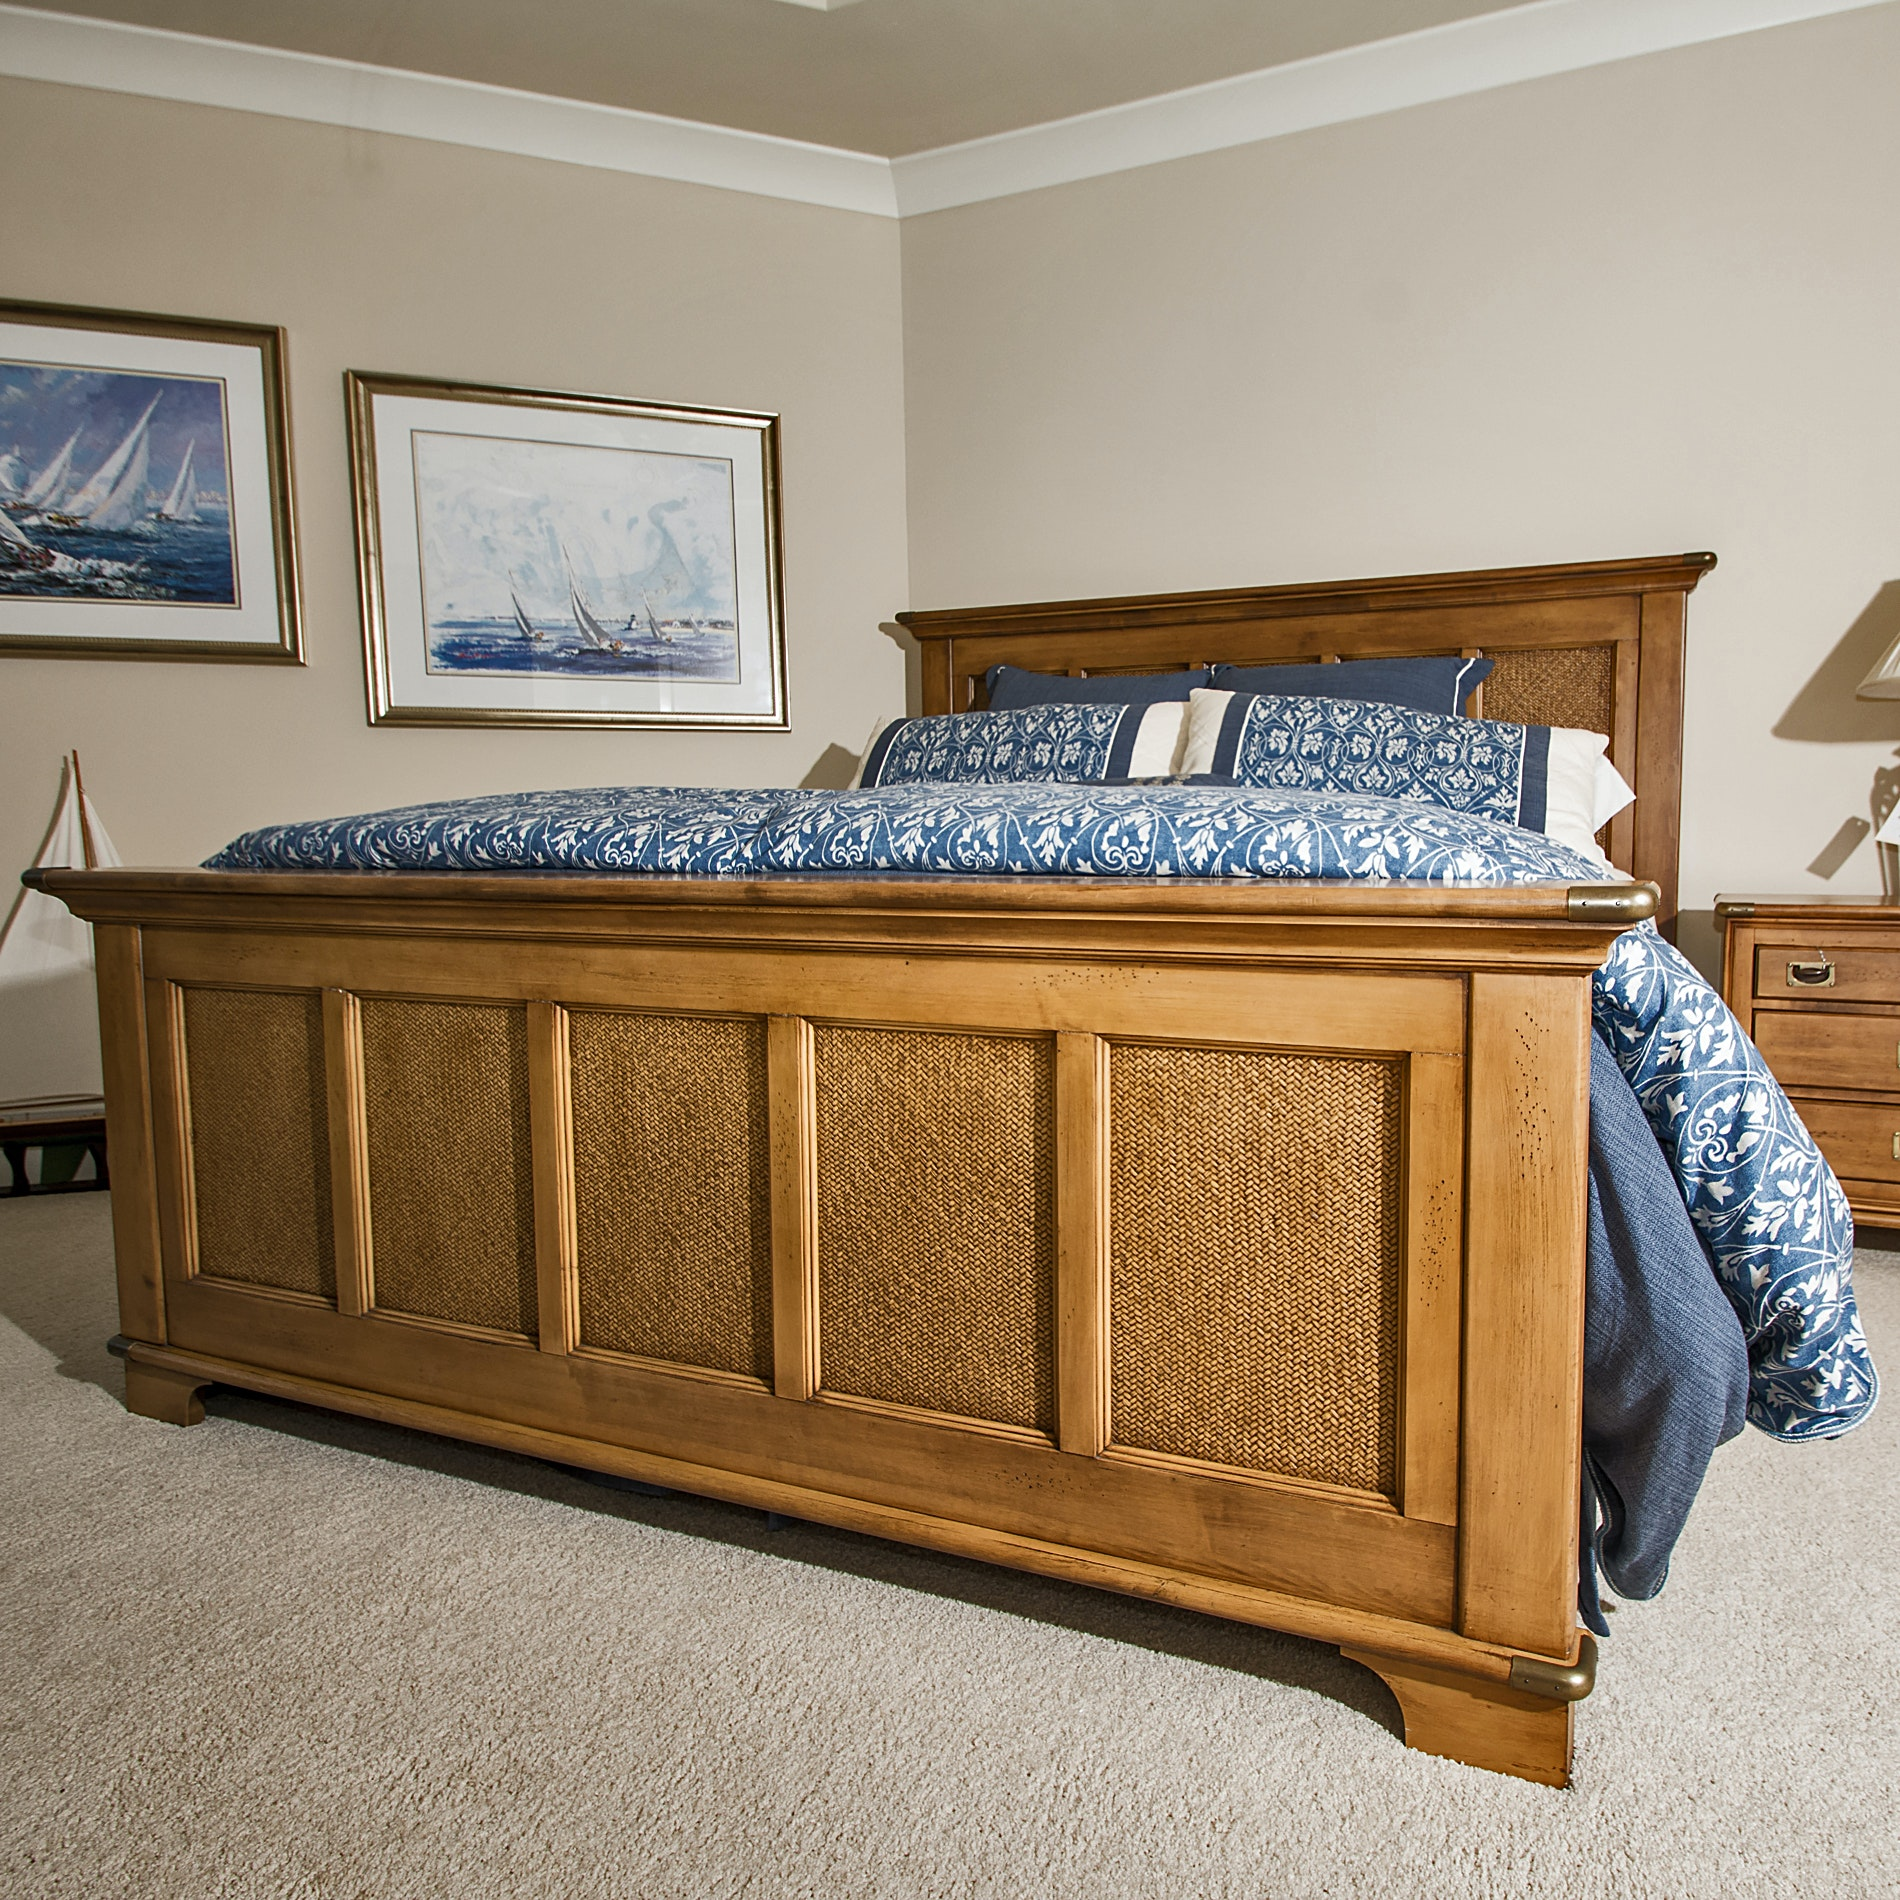 Lexington Furniture Nautica Home King Size Bed ...